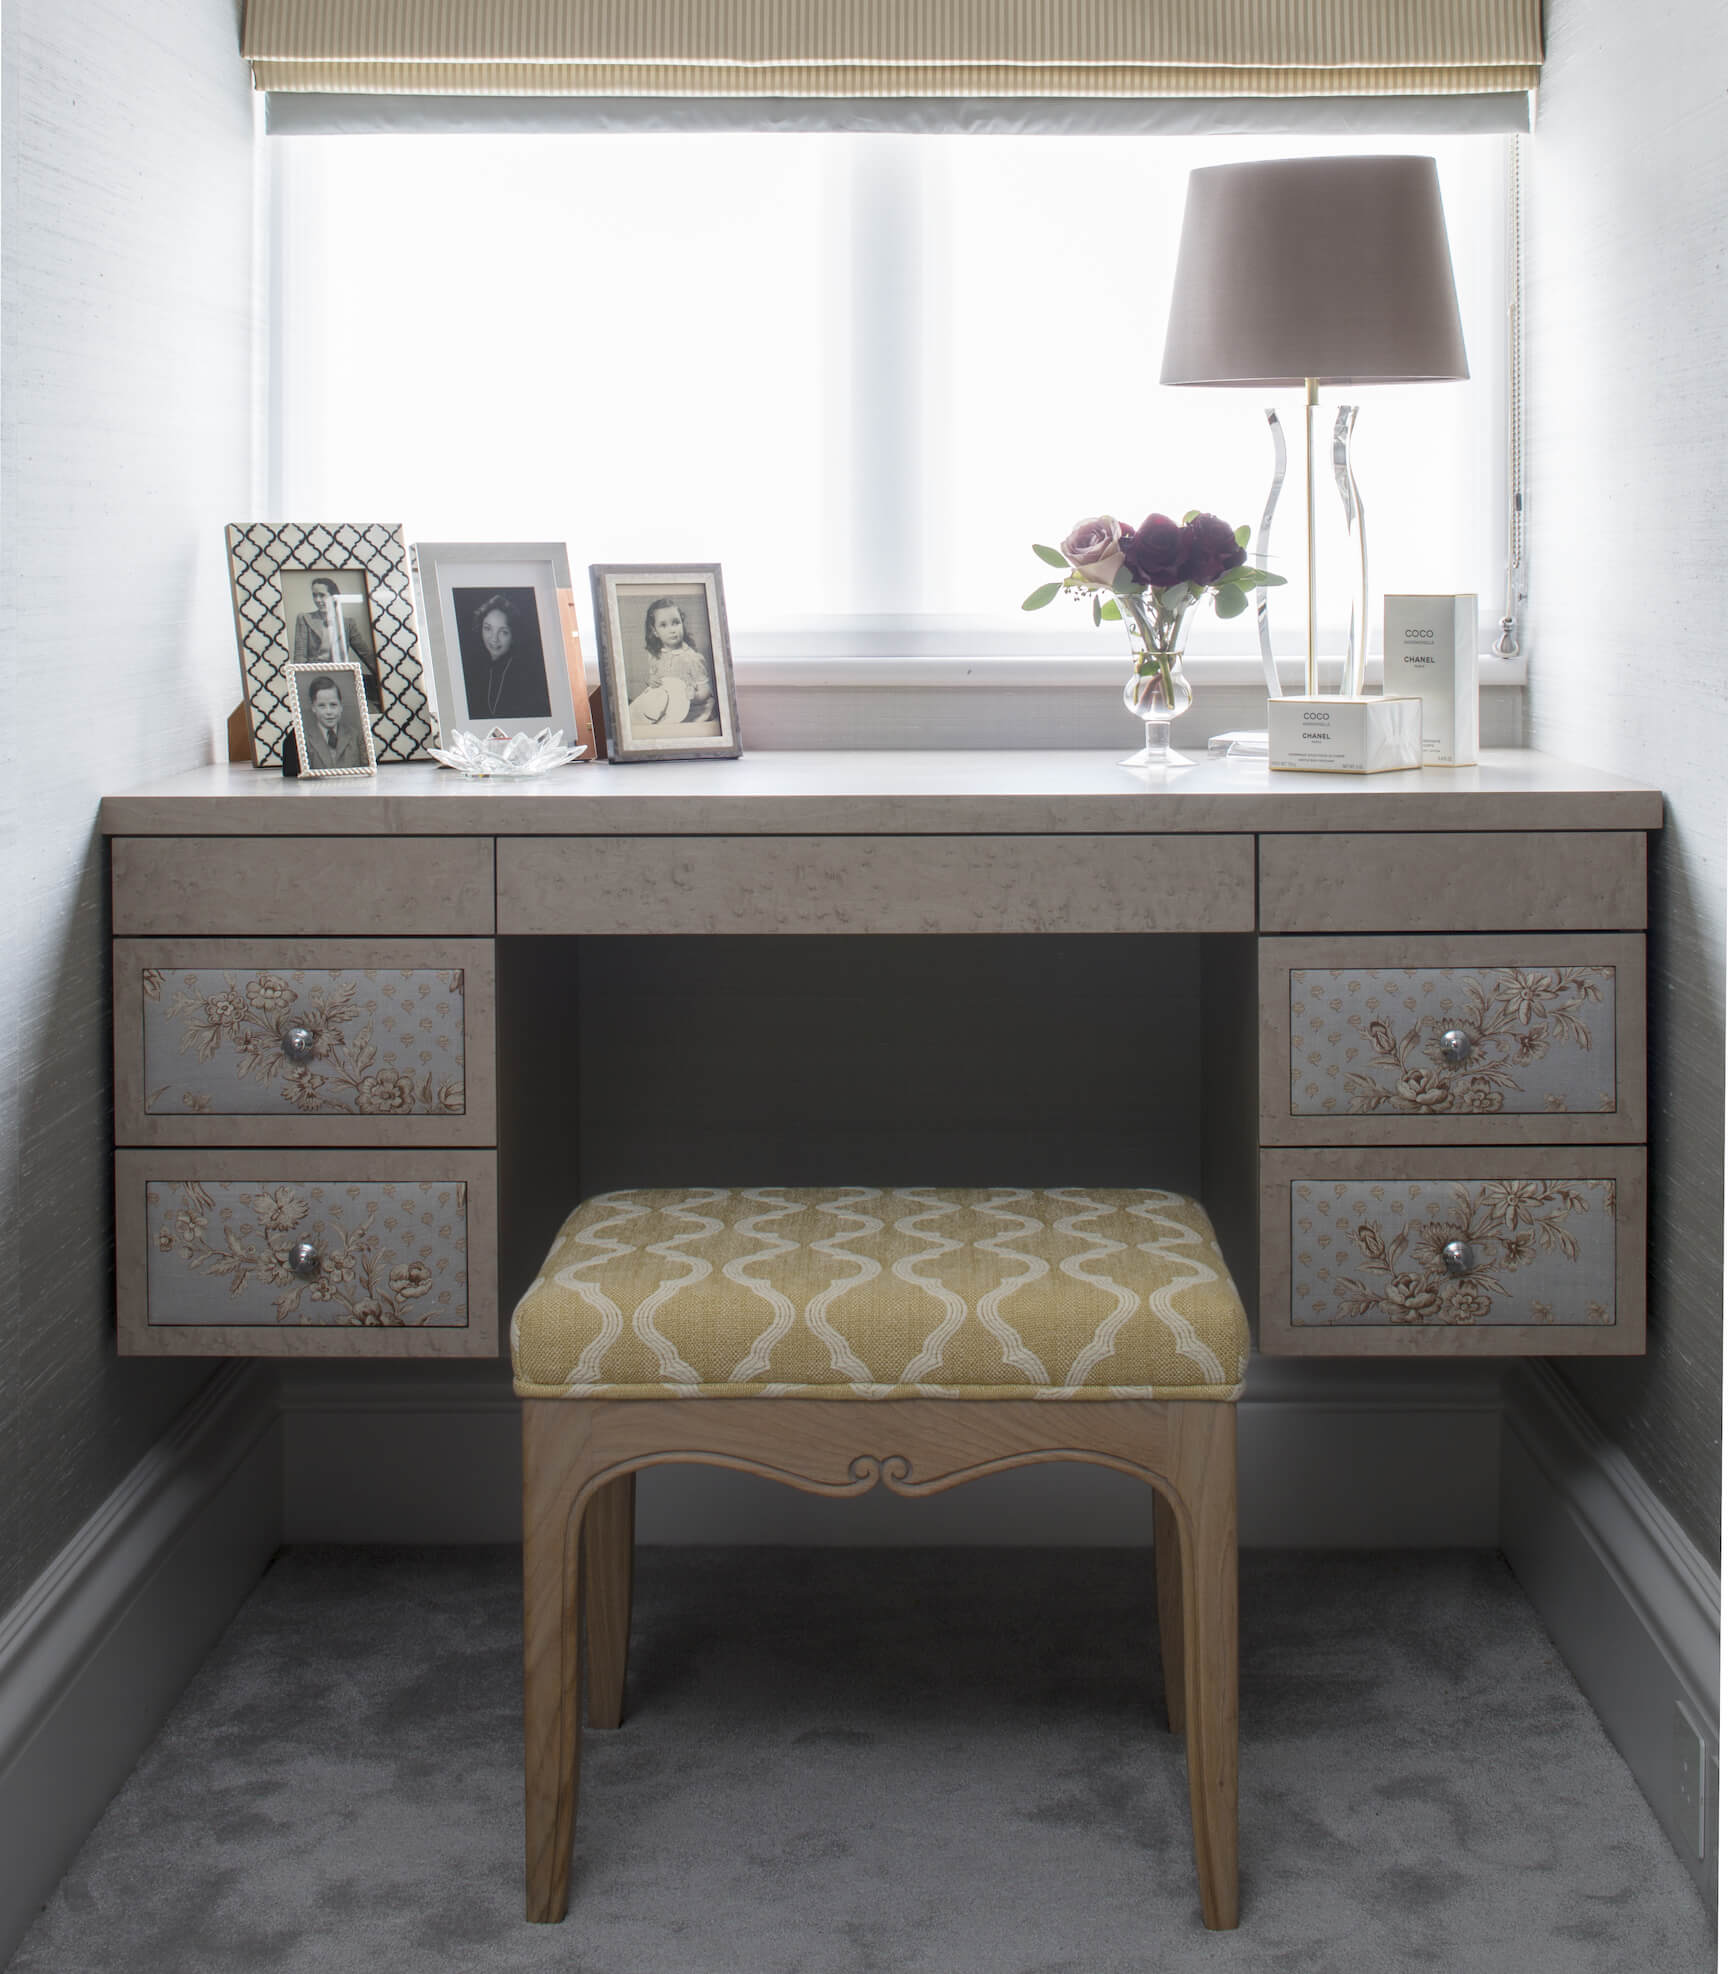 Bedroom features this cozy floating powder room desk, with floral patterned drawers, below a window. Natural wood frame bench chair with gold patterned seating stands below.